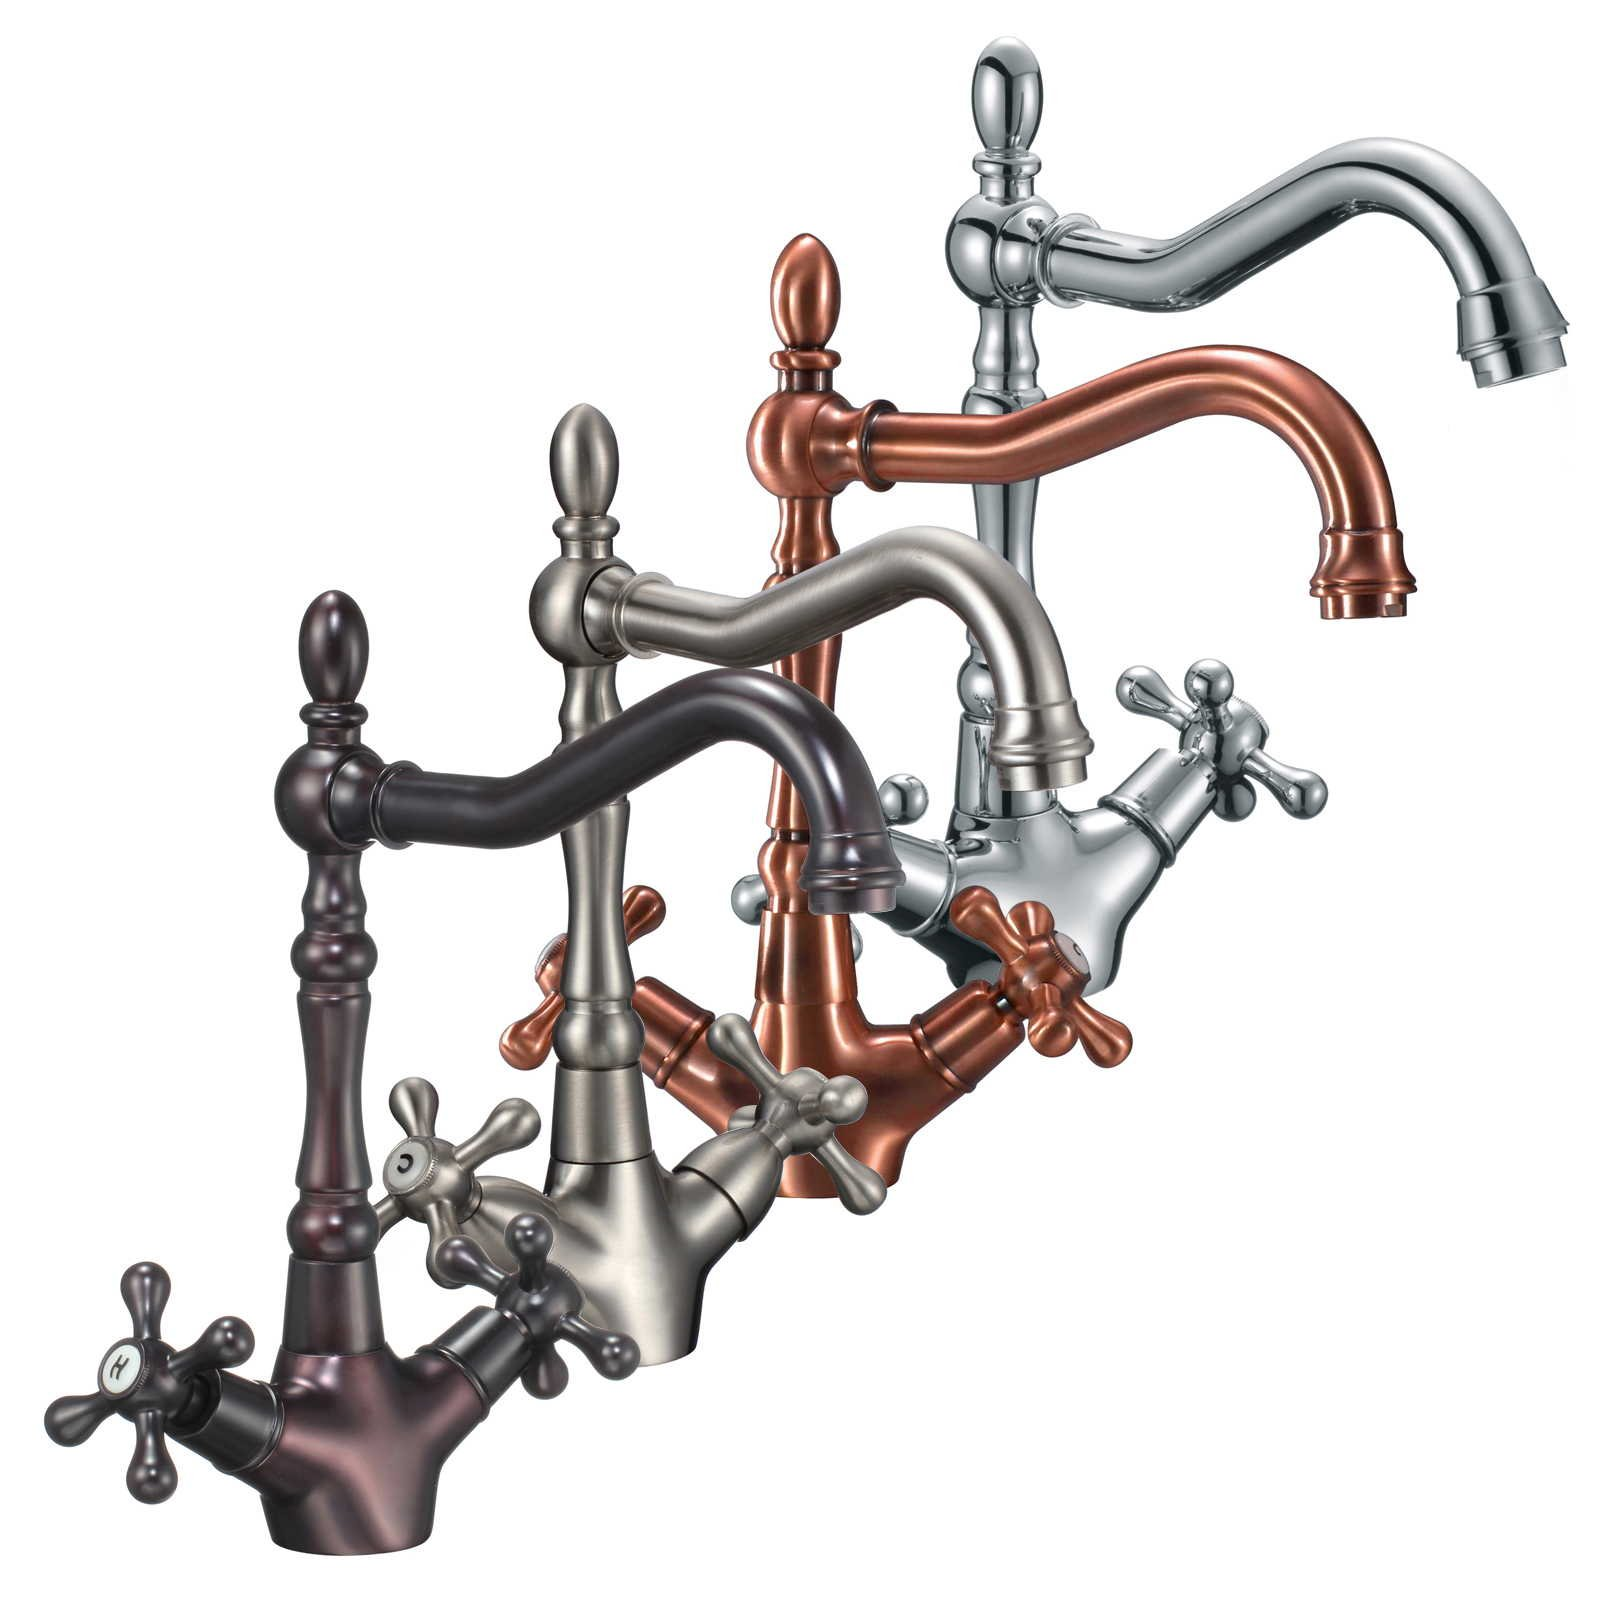 FREUER Bellissimo Collection: Classic Kitchen/Wet Bar Sink Faucet, Brushed Nickel by Freuer